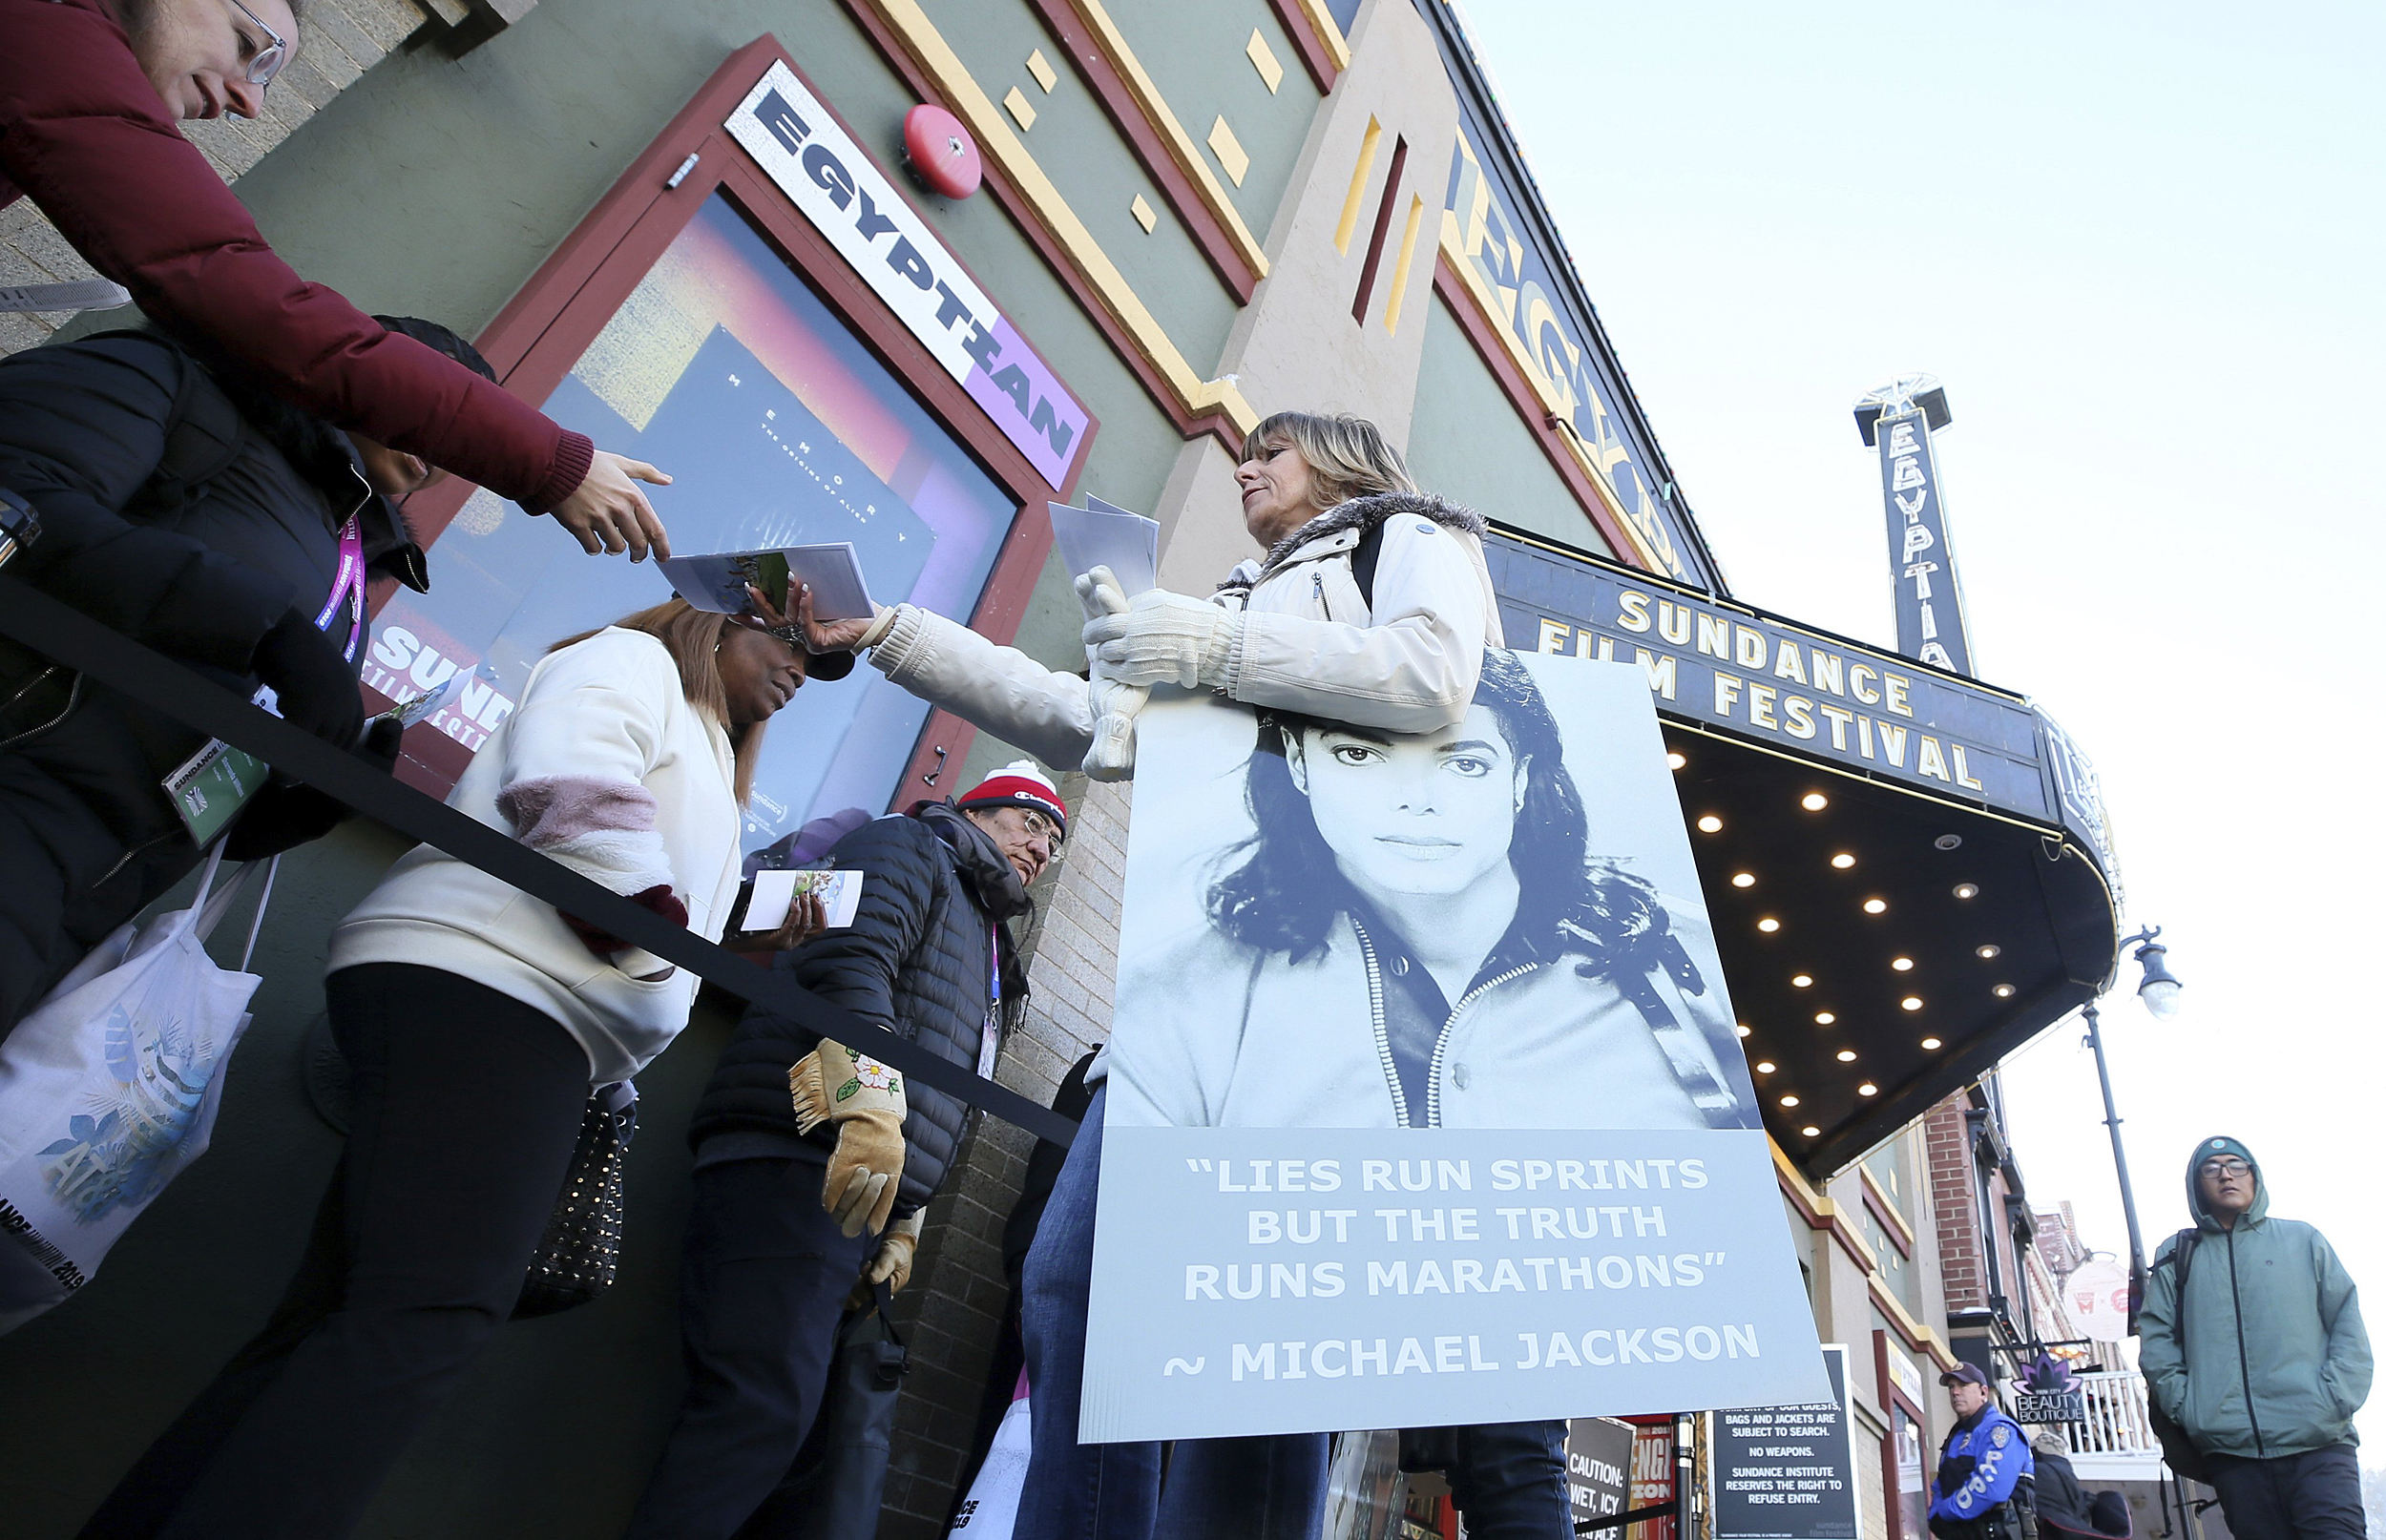 ee63c820cb39 Michael Jackson accusers get solemn ovation at Sundance festival